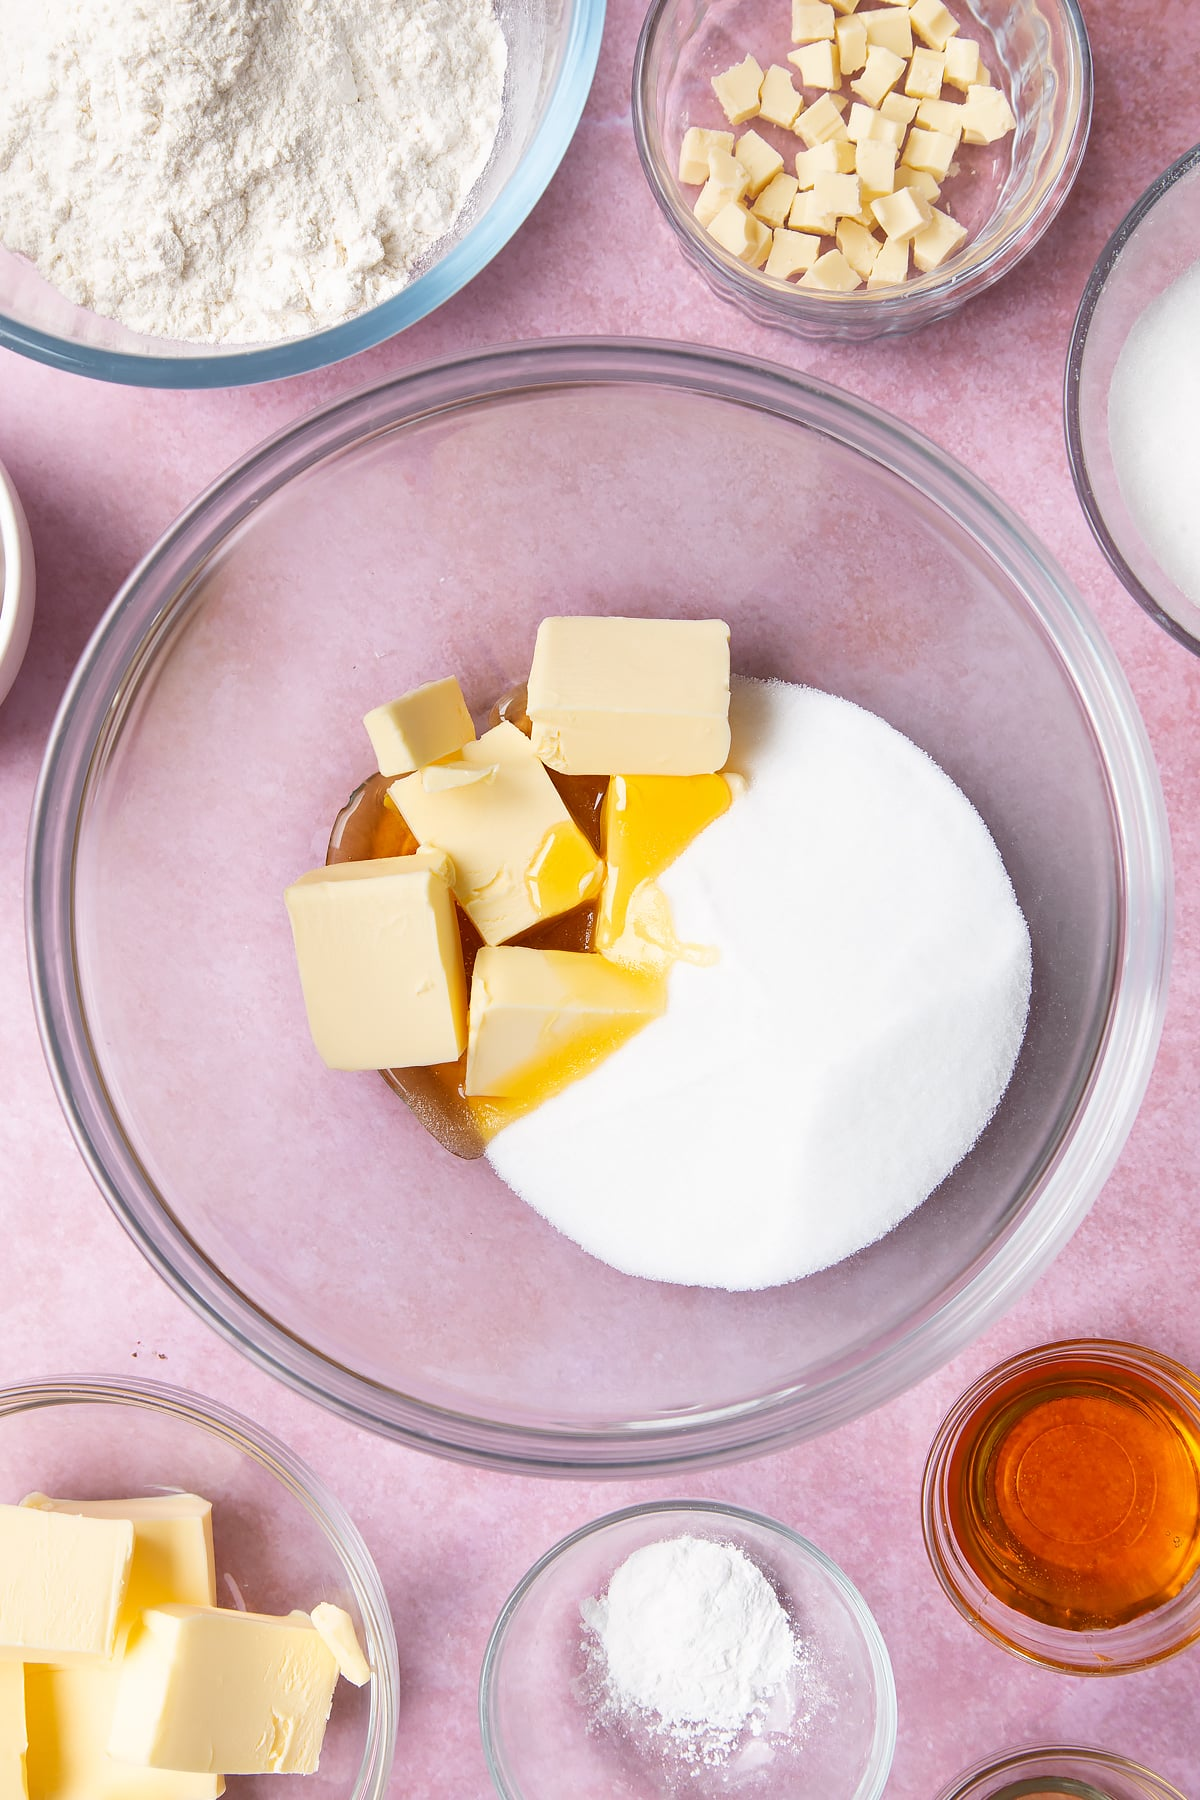 Overhead shot of butter, golden syrup and sugar in a large clear bowl